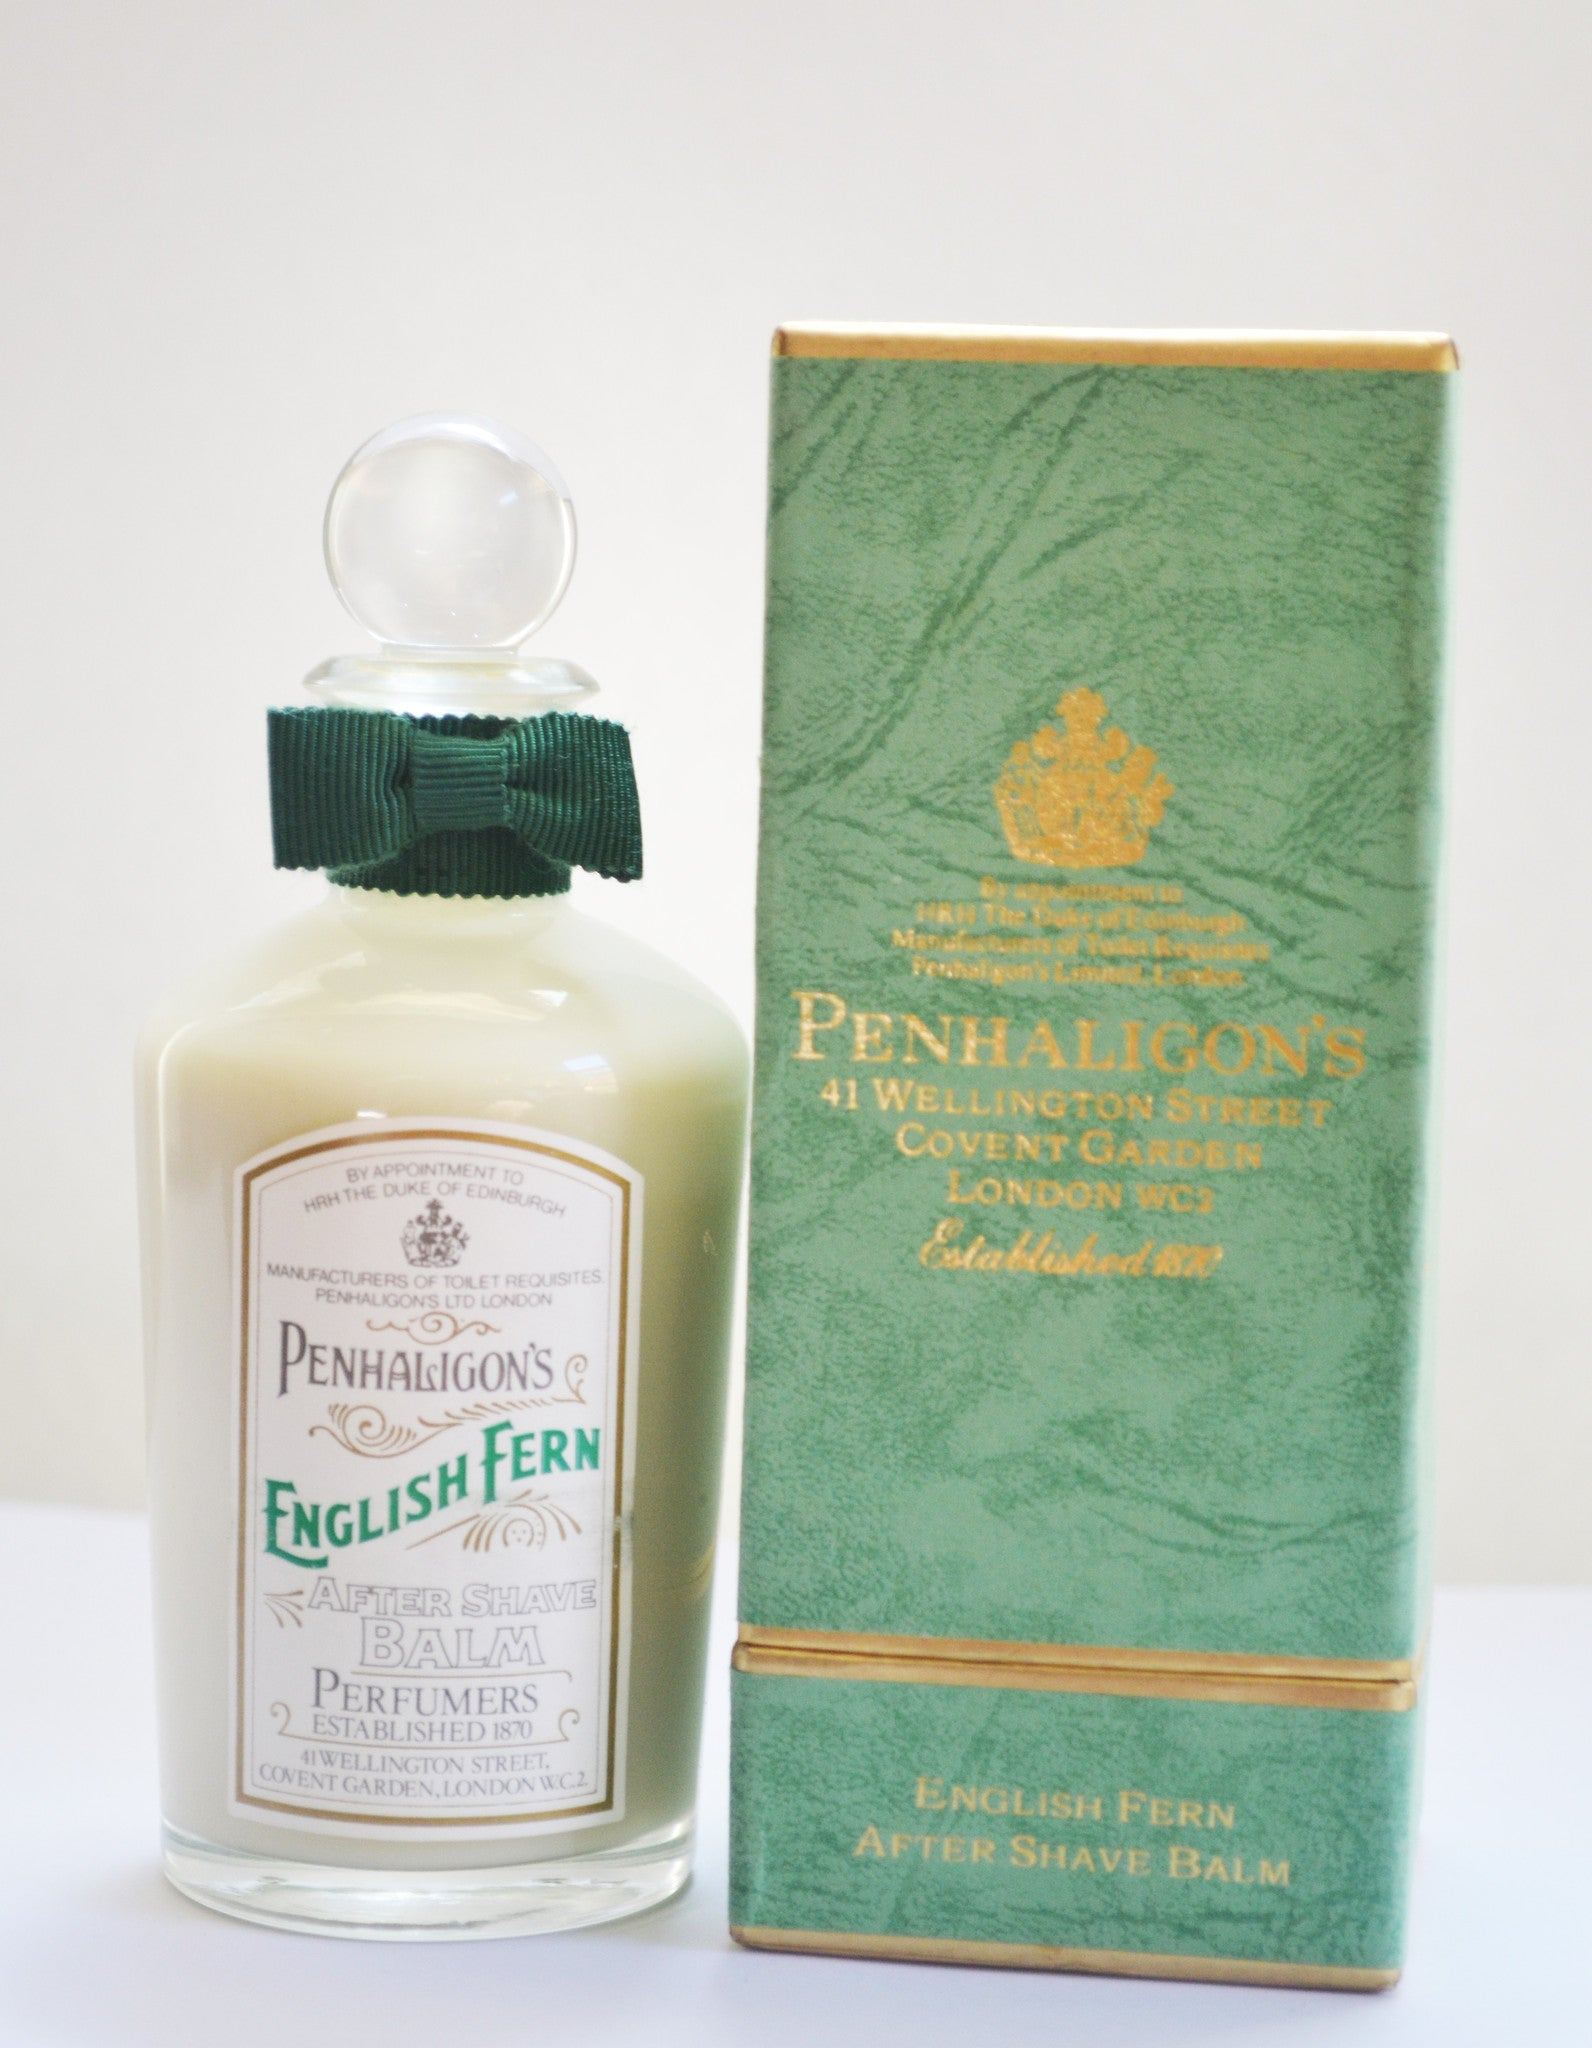 English Fern After Shave Balm By Penhaligon